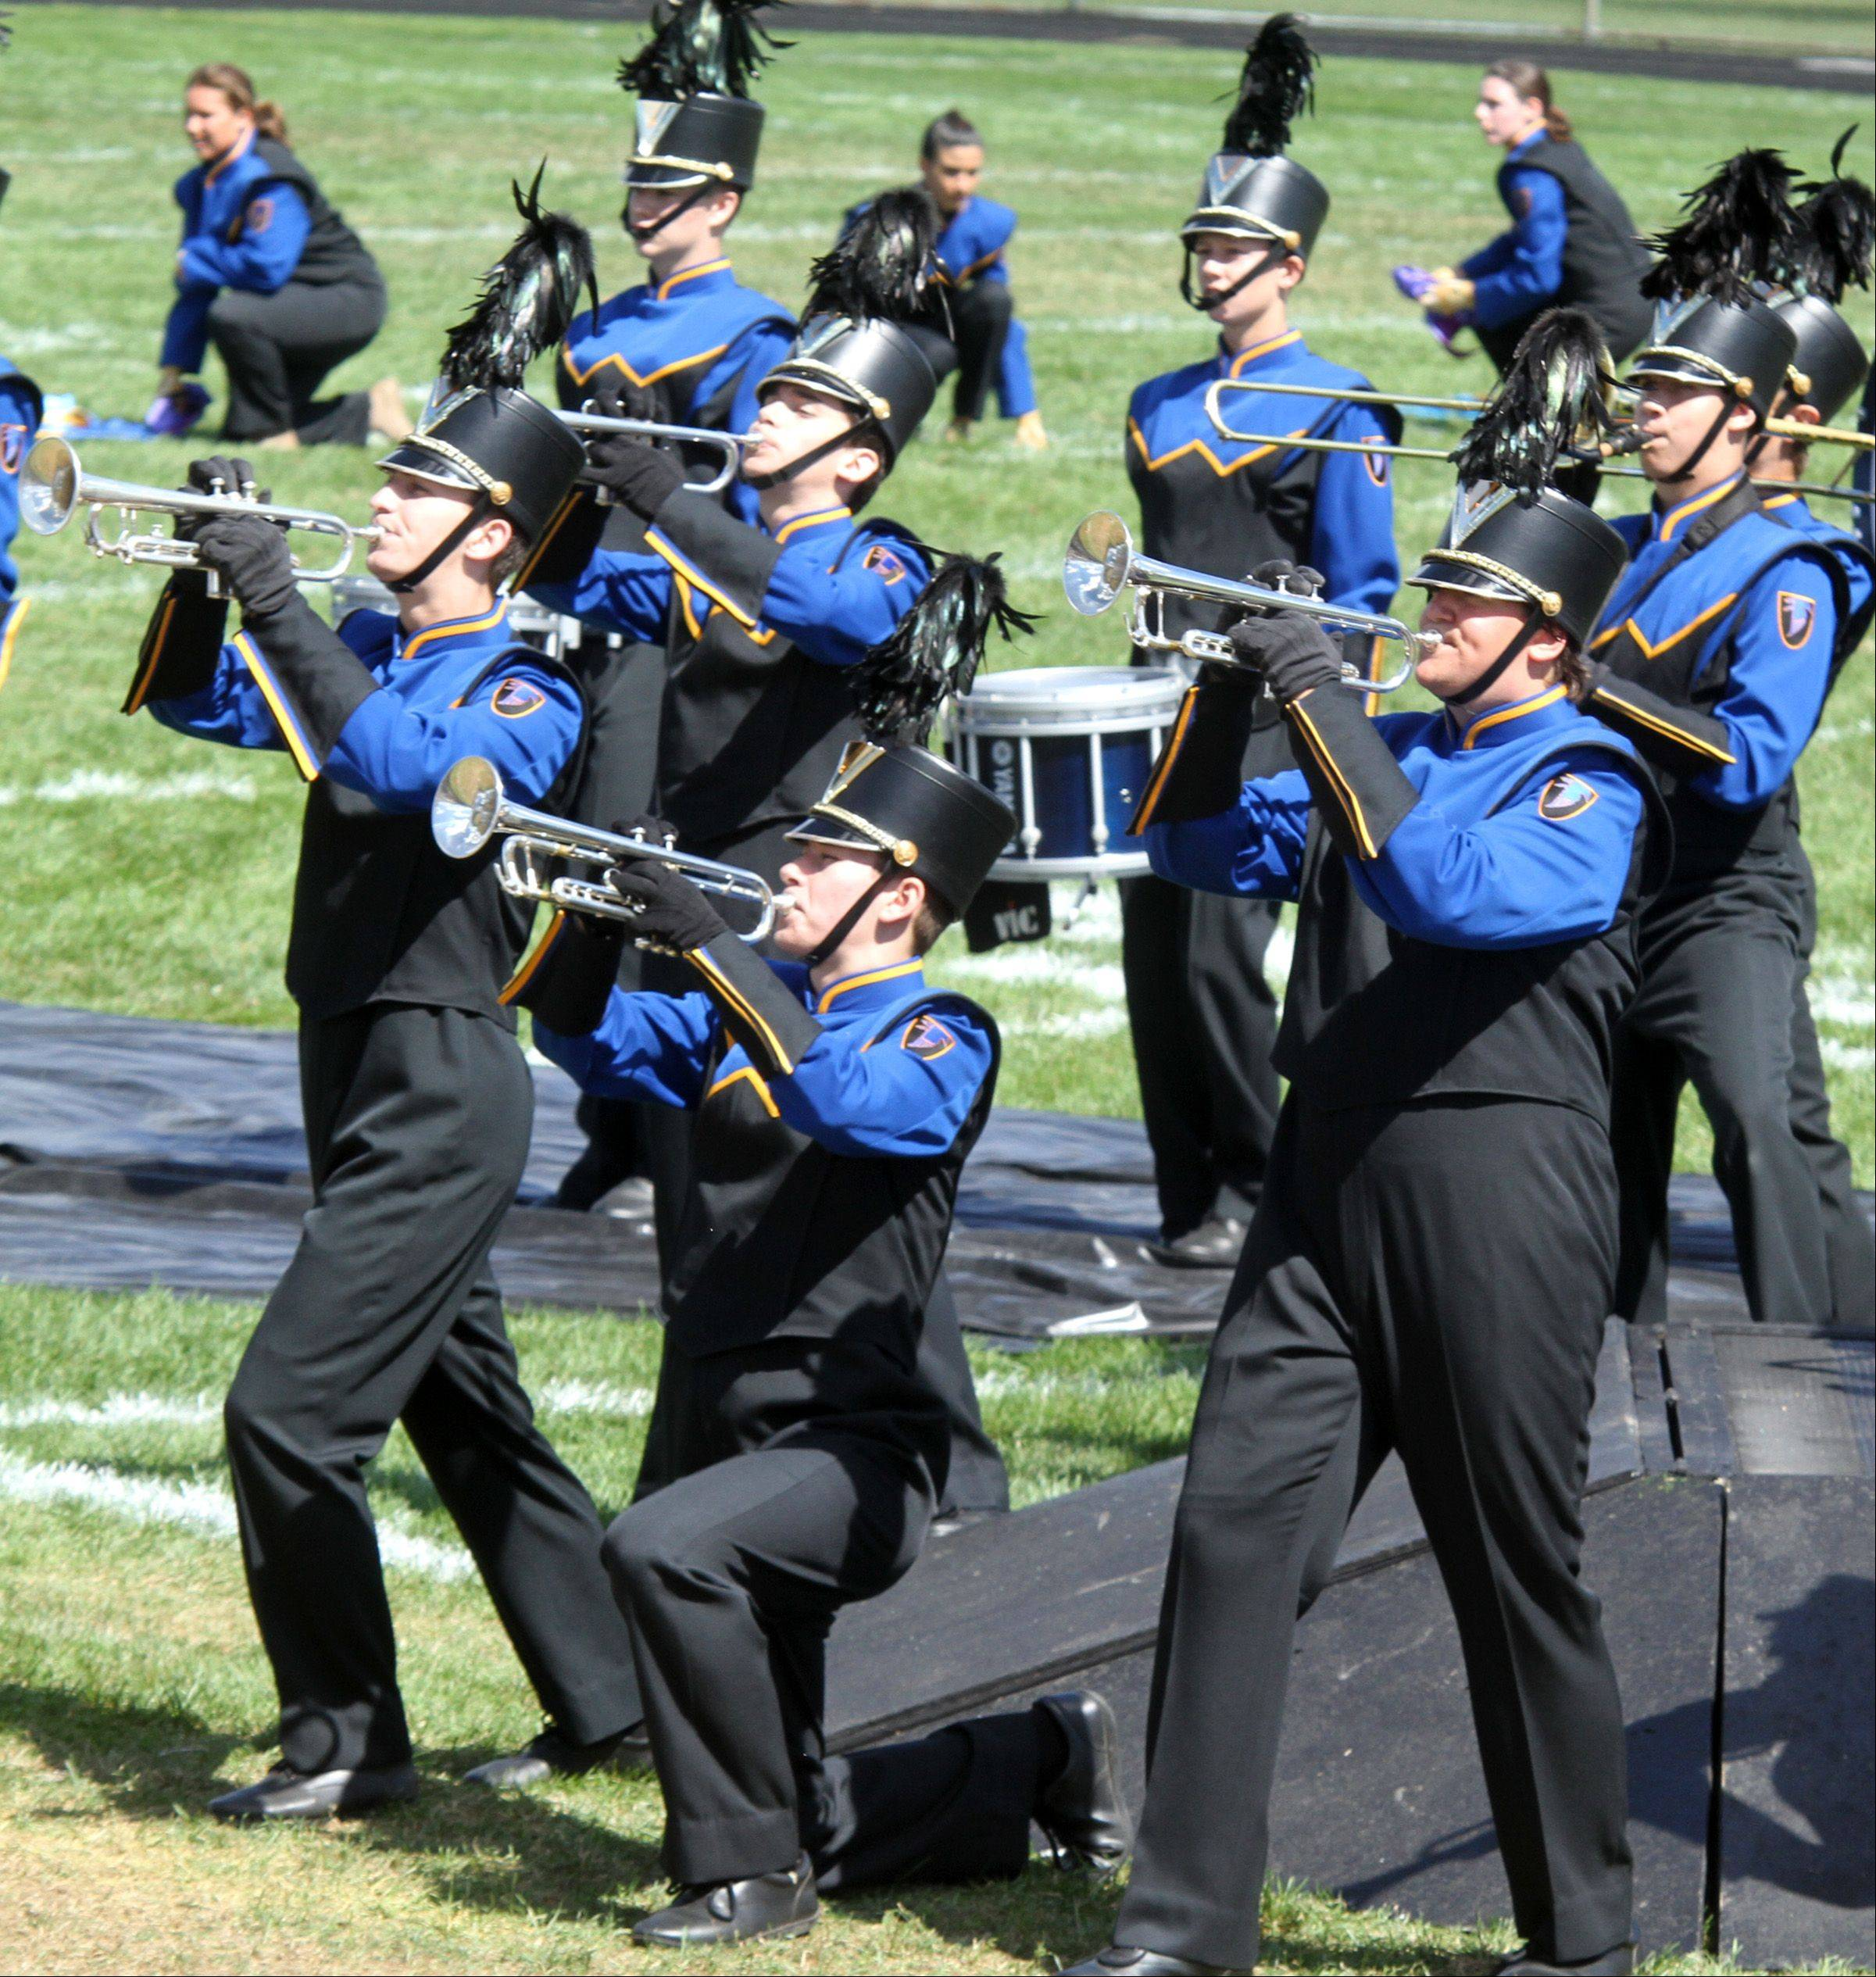 The Wheaton North High School Marching Falcons will perform an exhibition piece during the marching band competition they are hosting Saturday at their school in Wheaton.